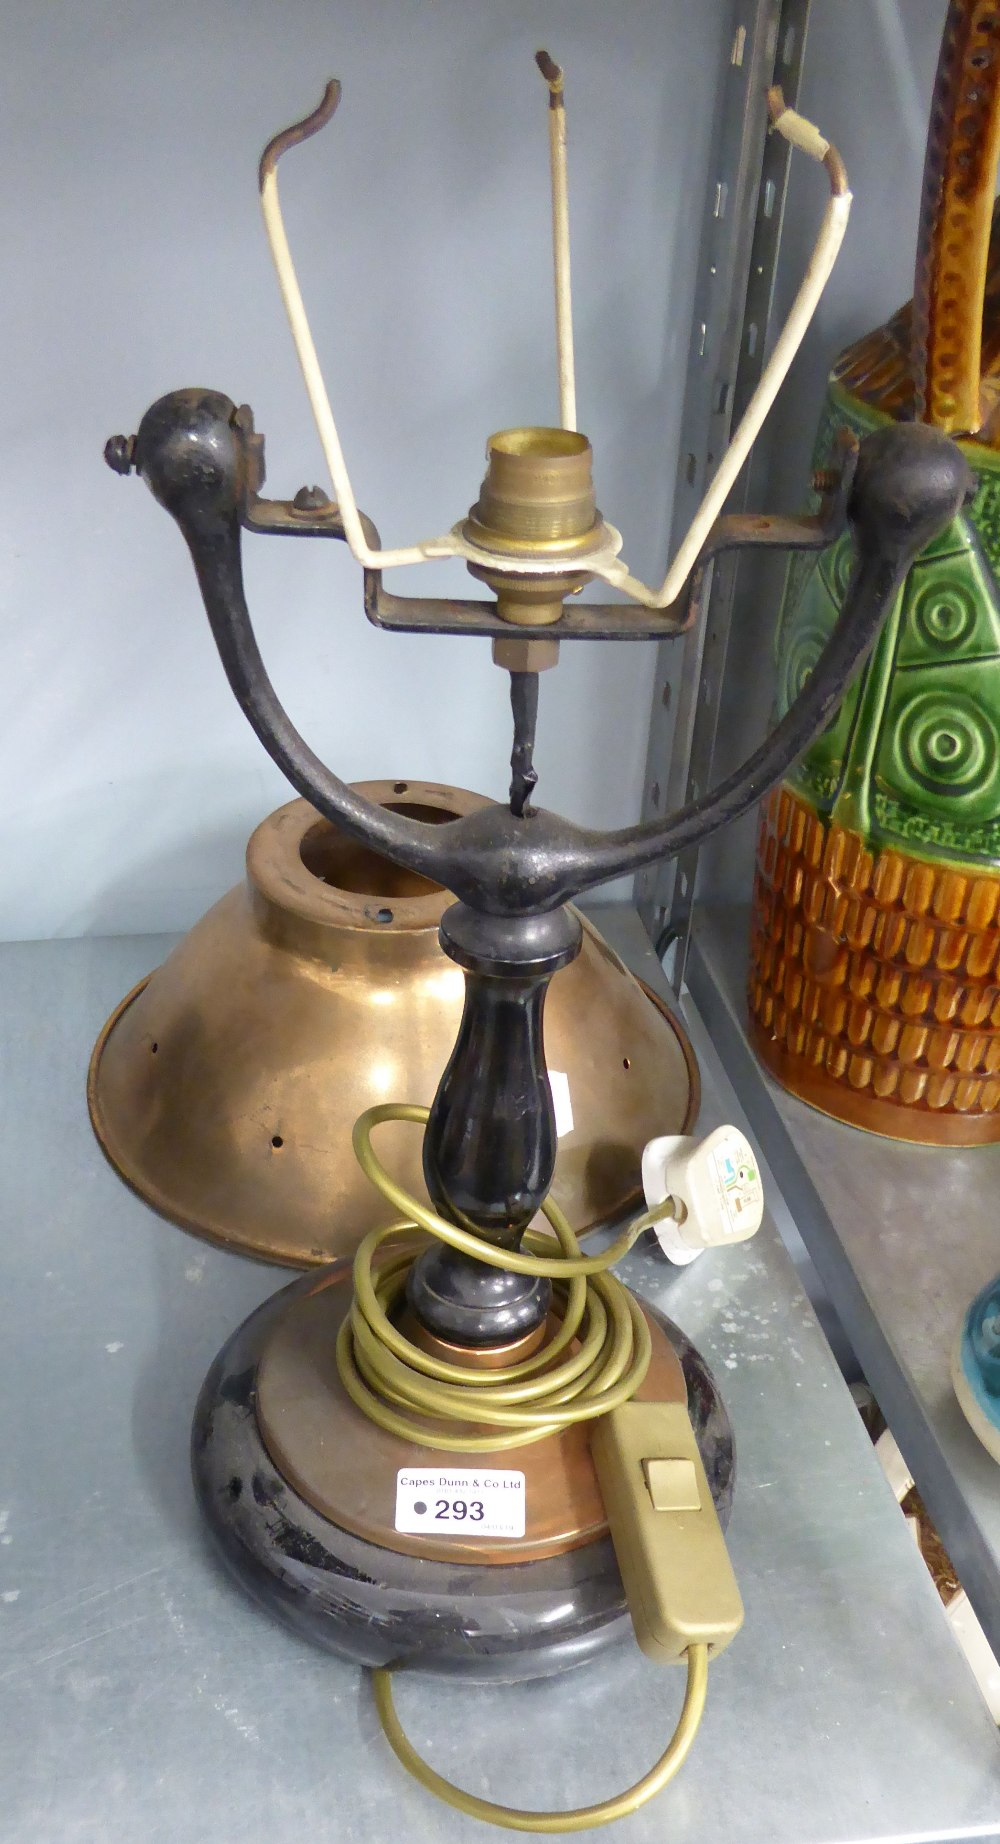 Lot 293 - A VINTAGE DESK LAMP WITH COPPER BOWL SHADE